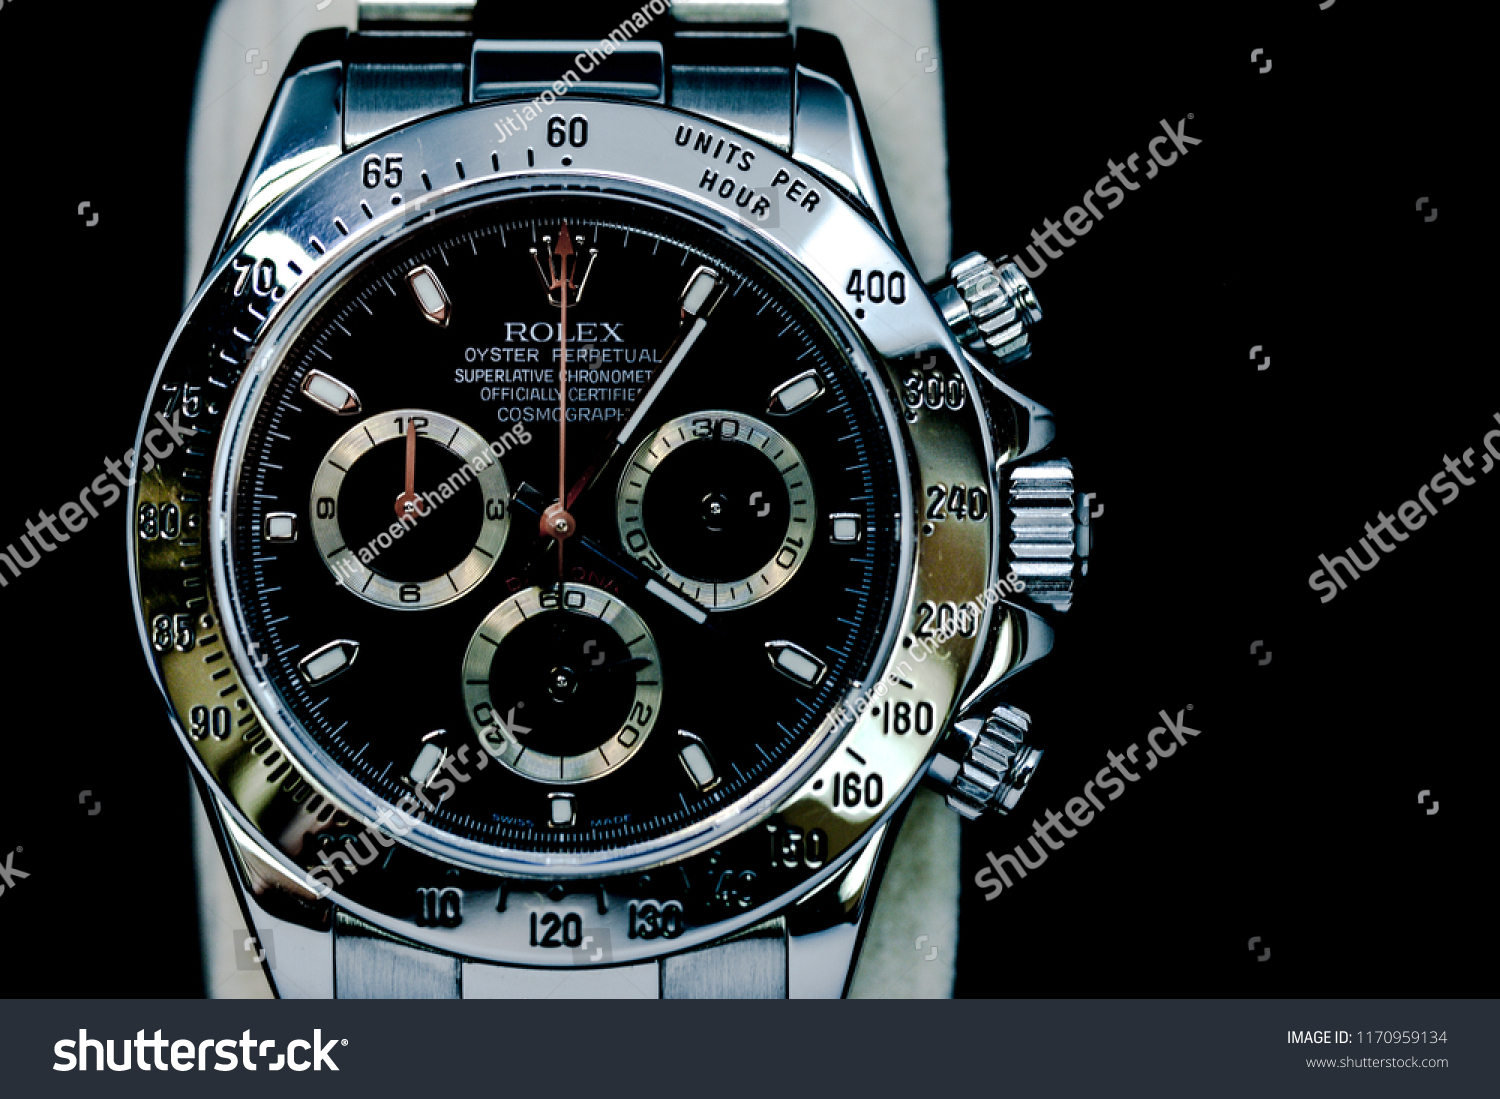 383c13b86d1 Luxury Rolex watch several models such as sports model , special dial ,  were demonstrated under.